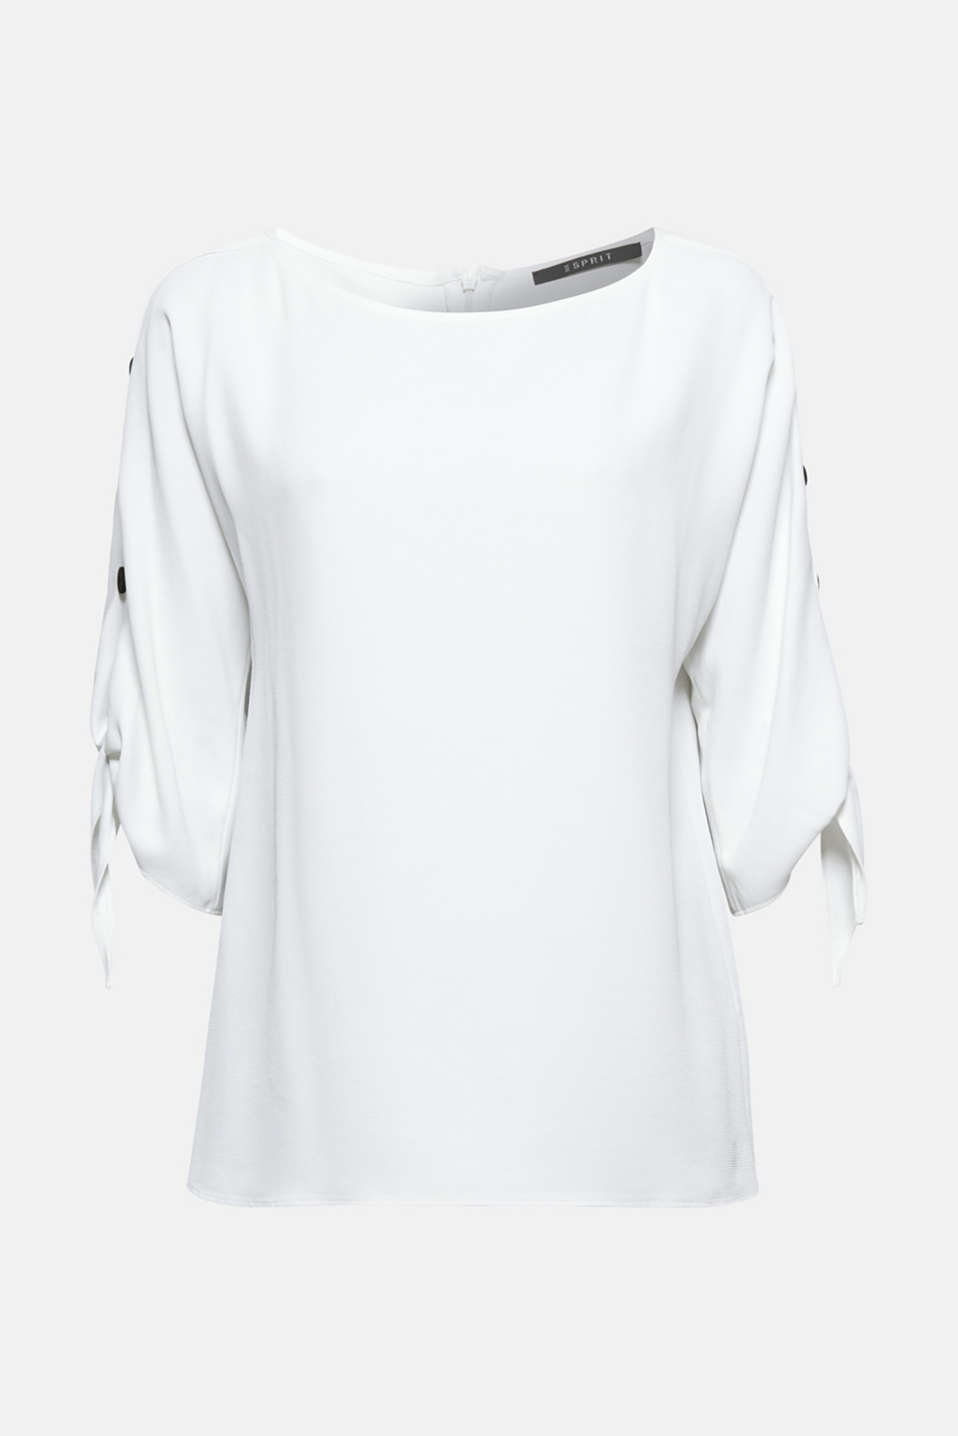 Three-quarter length sleeves with knotted ends + buttons in a contrasting colour make this textured blouse so modern!